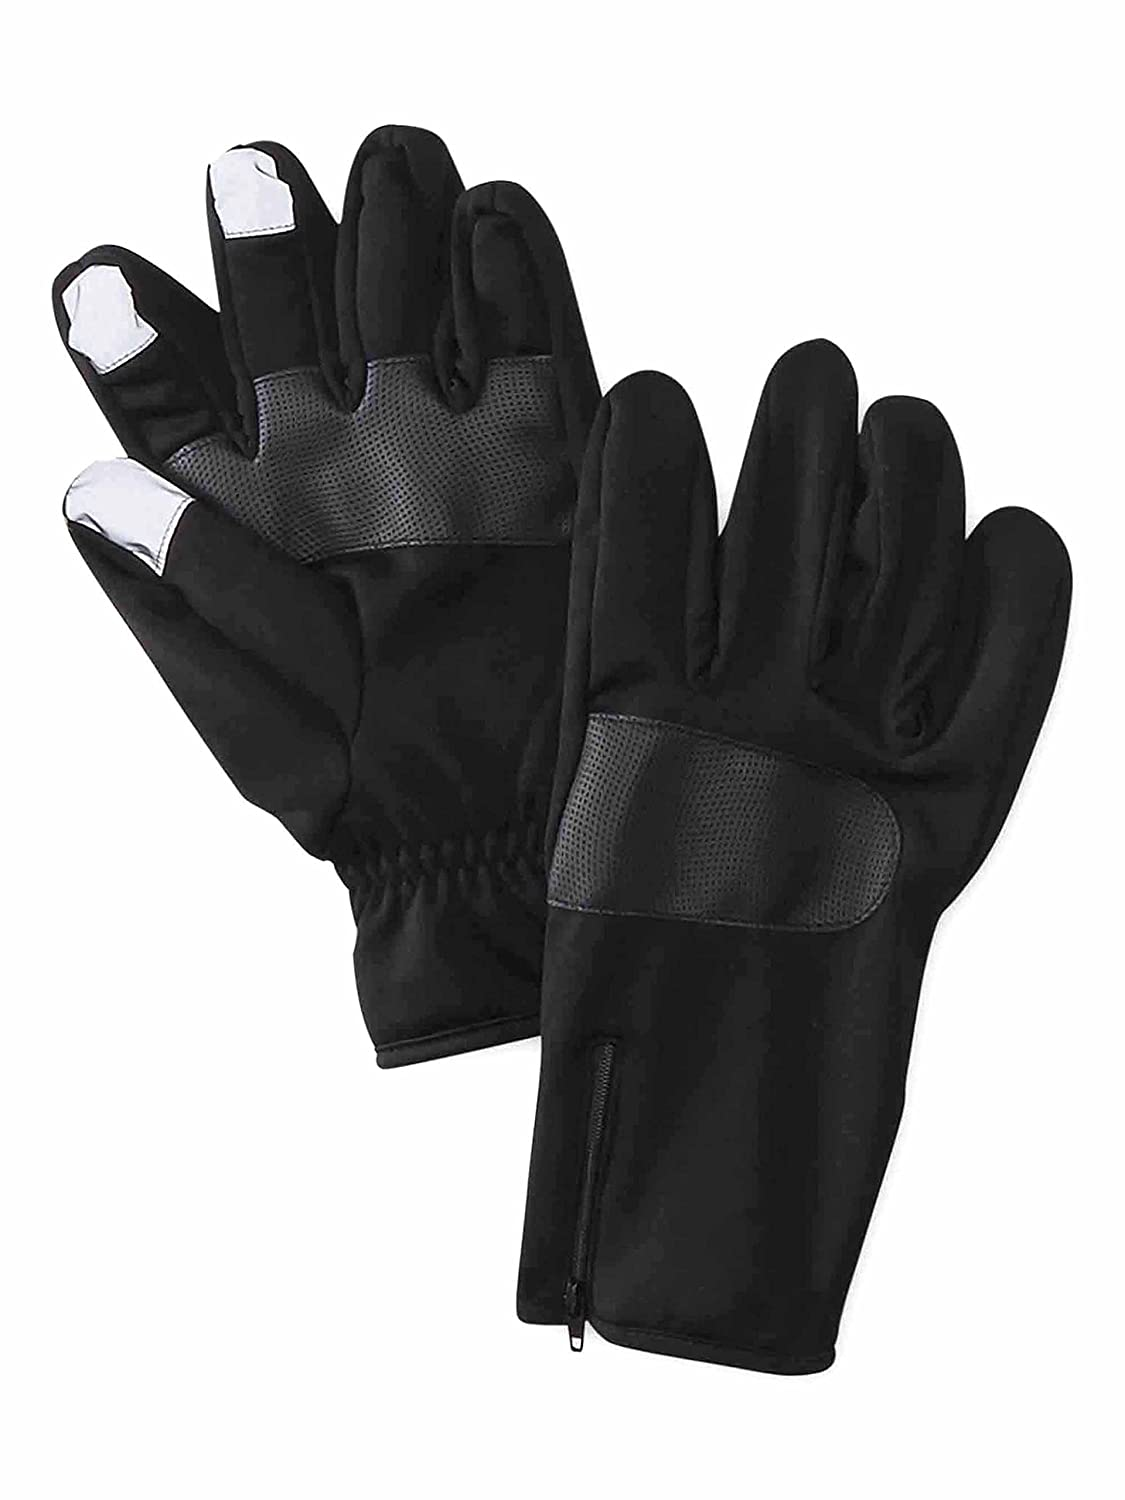 NordicTrack Mens Zippered Neoprene Fleece Lined Texting Gloves Black